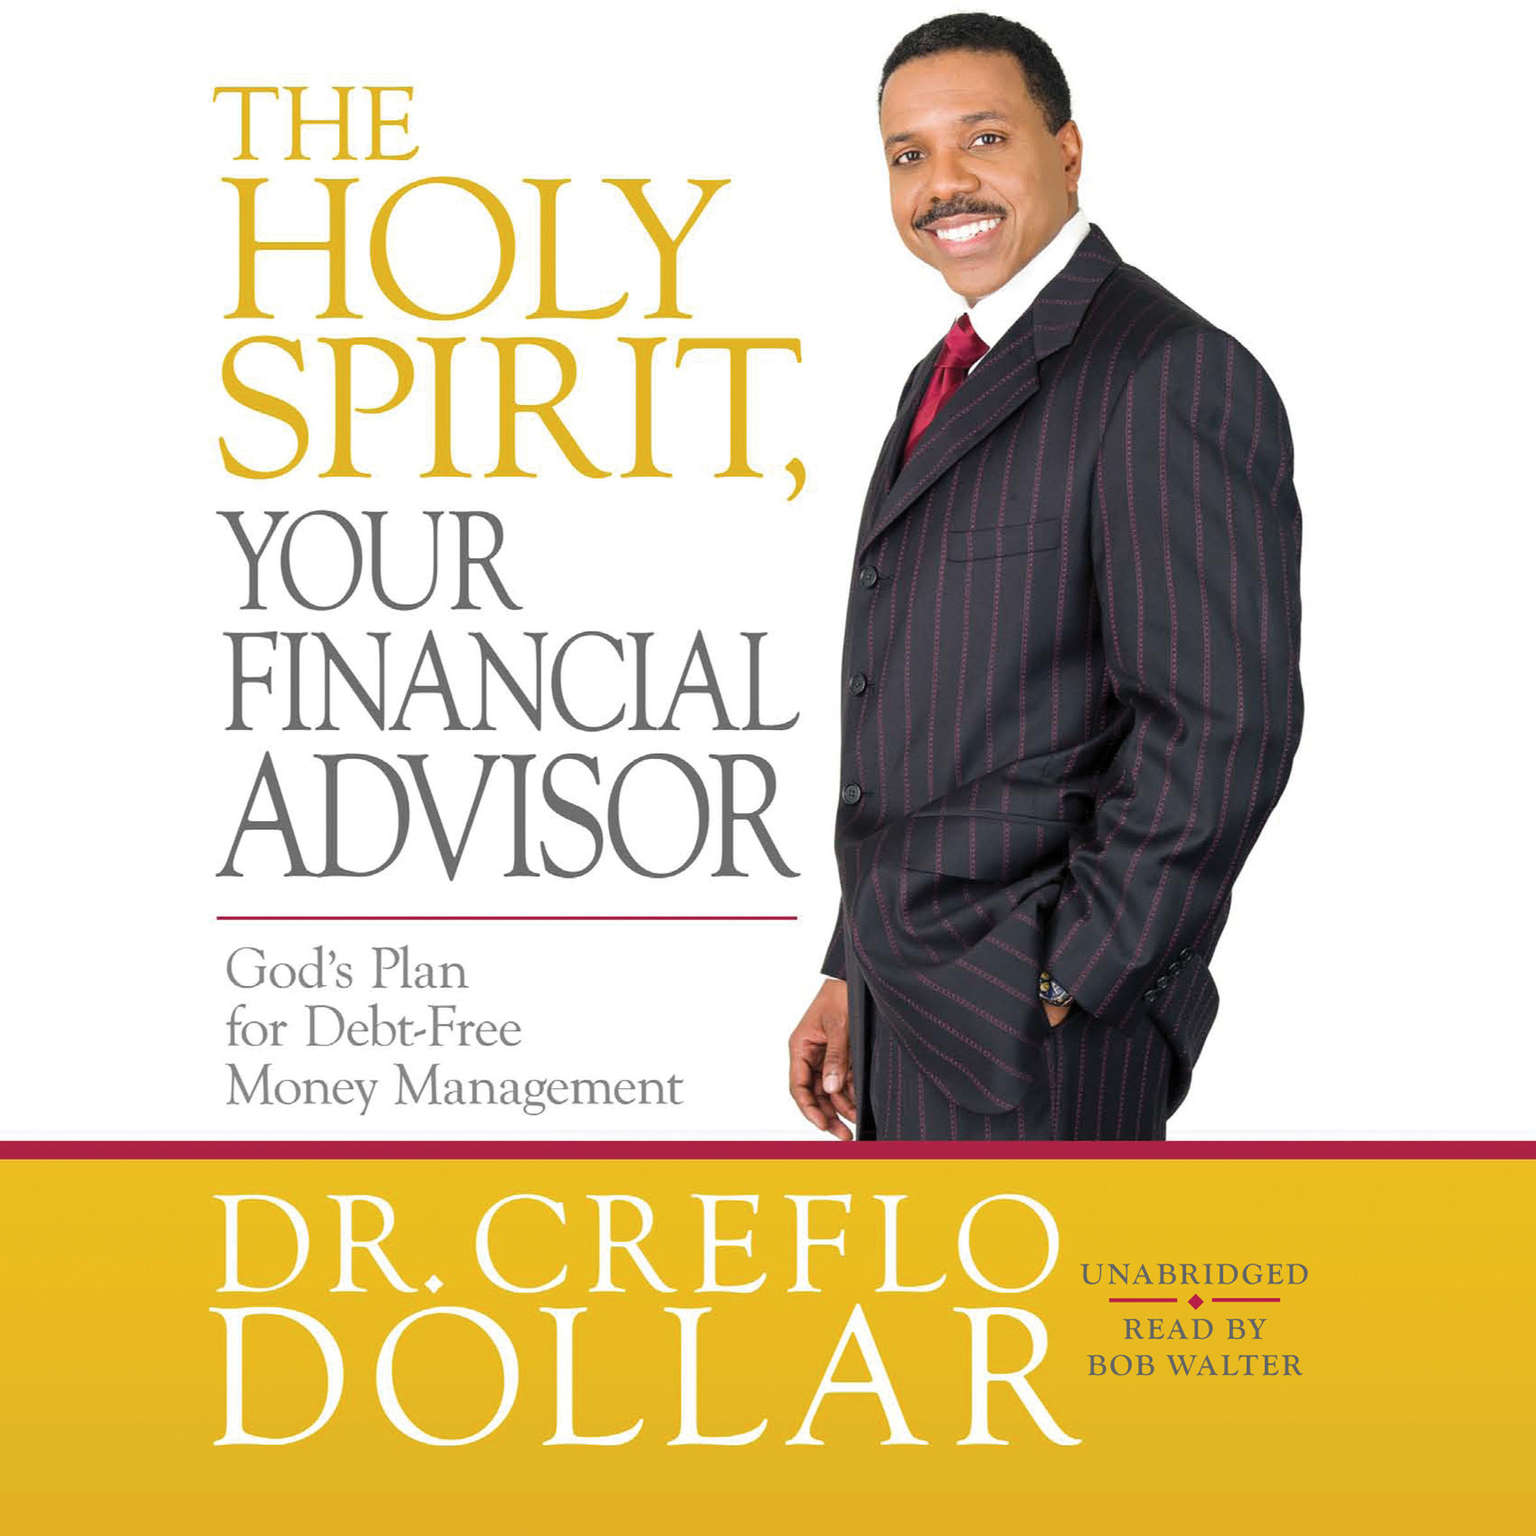 the holy spirit your financial advisor audiobook by  extended audio sample the holy spirit your financial advisor gods plan for debt money management